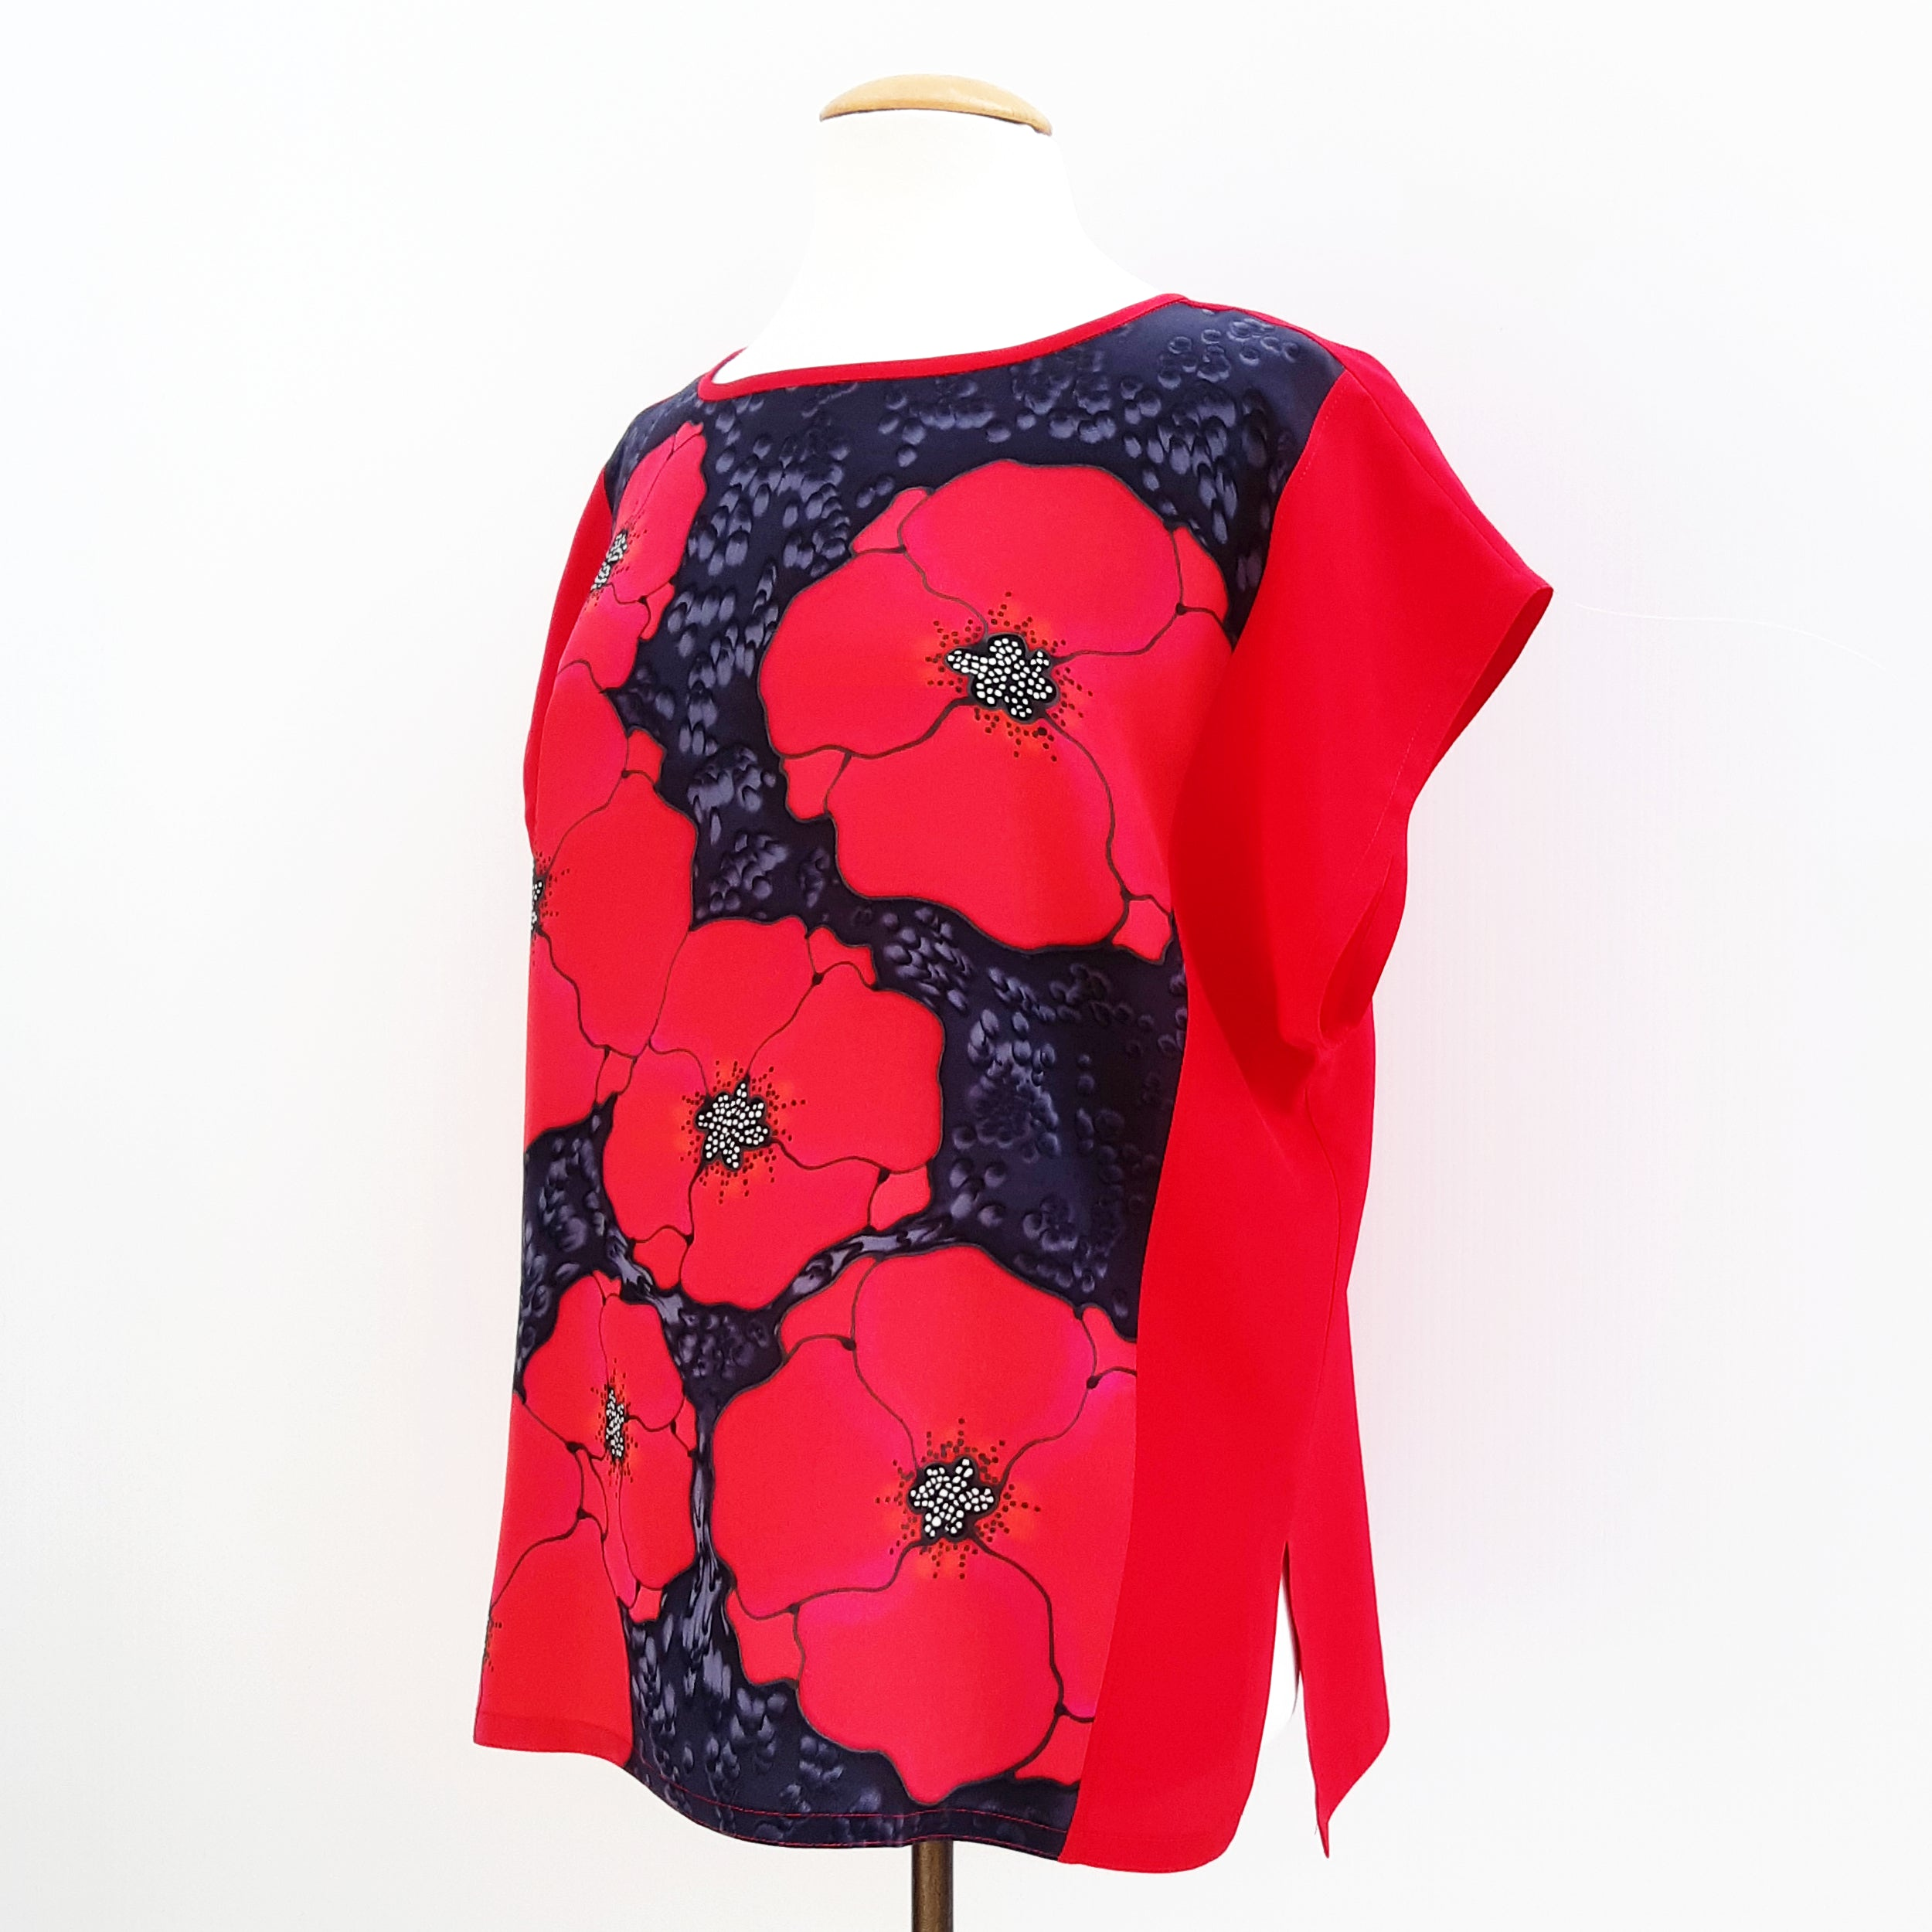 painted silk shirt for women red